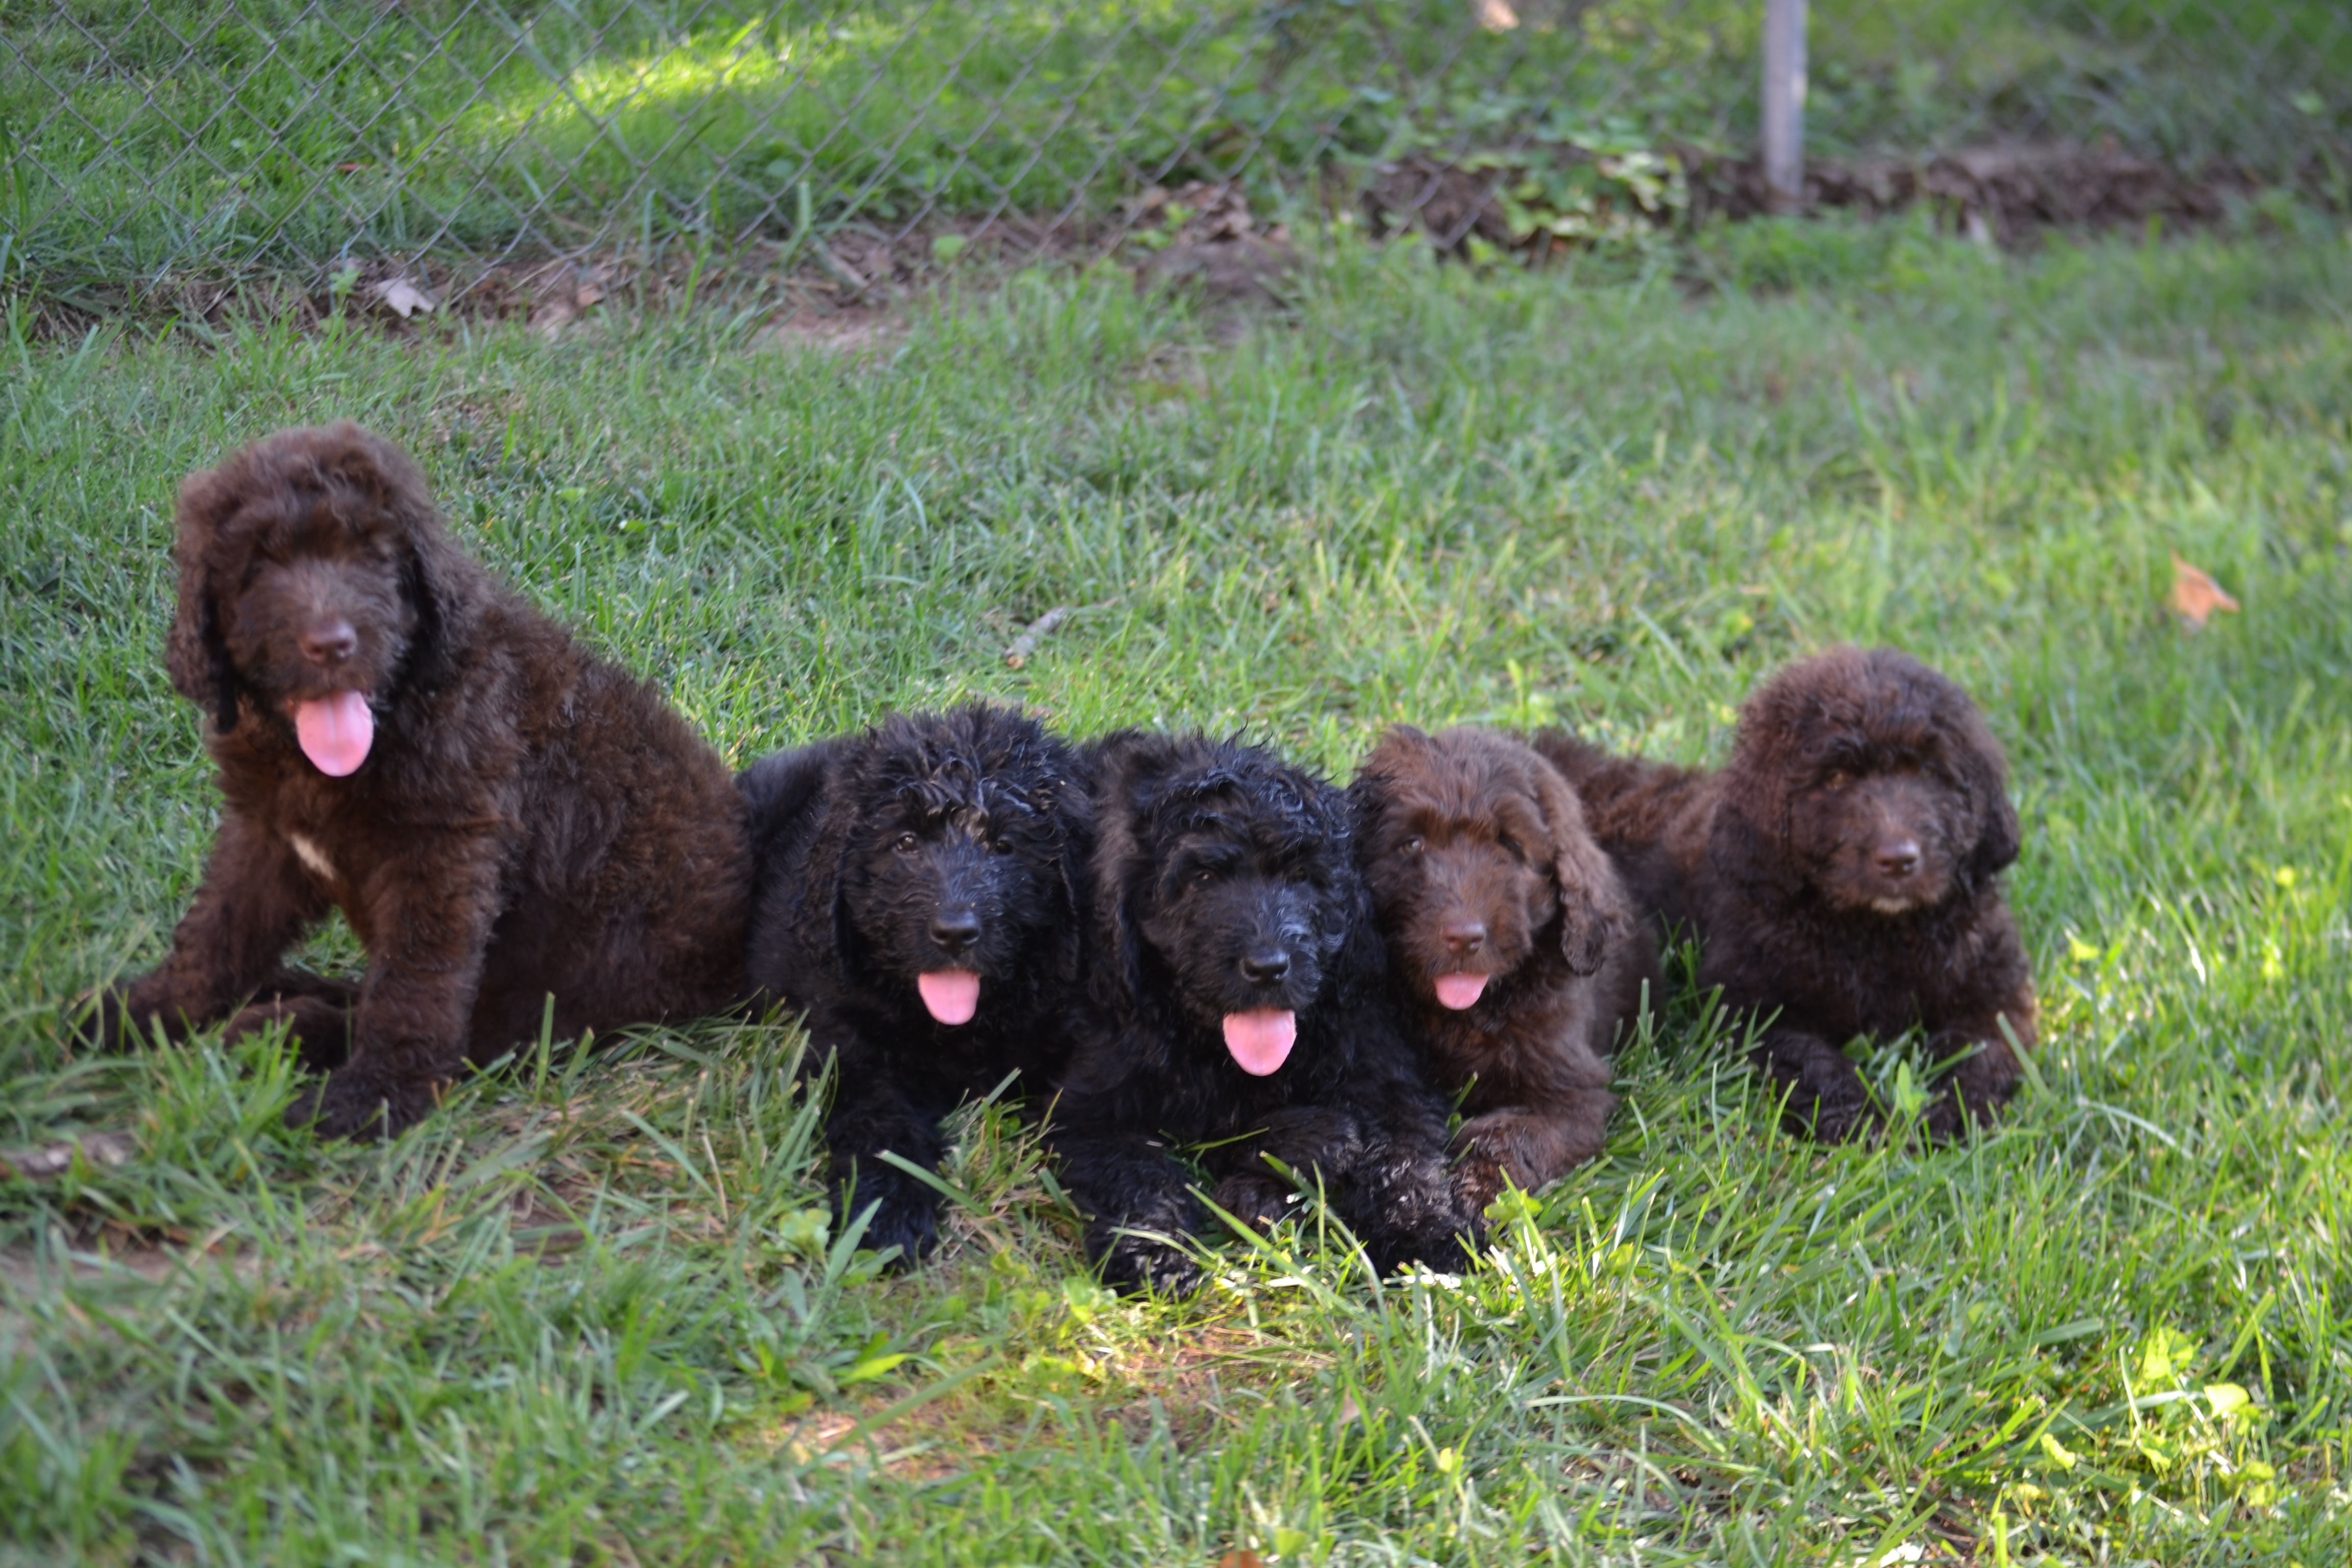 Gorgeous Newfypoo Puppies Up For Adoption Newfiedoodle Newfypoo Newfy Poodle Puppy Puppies Newfypoopuppies F1b Puppies Puppies For Sale Poodle